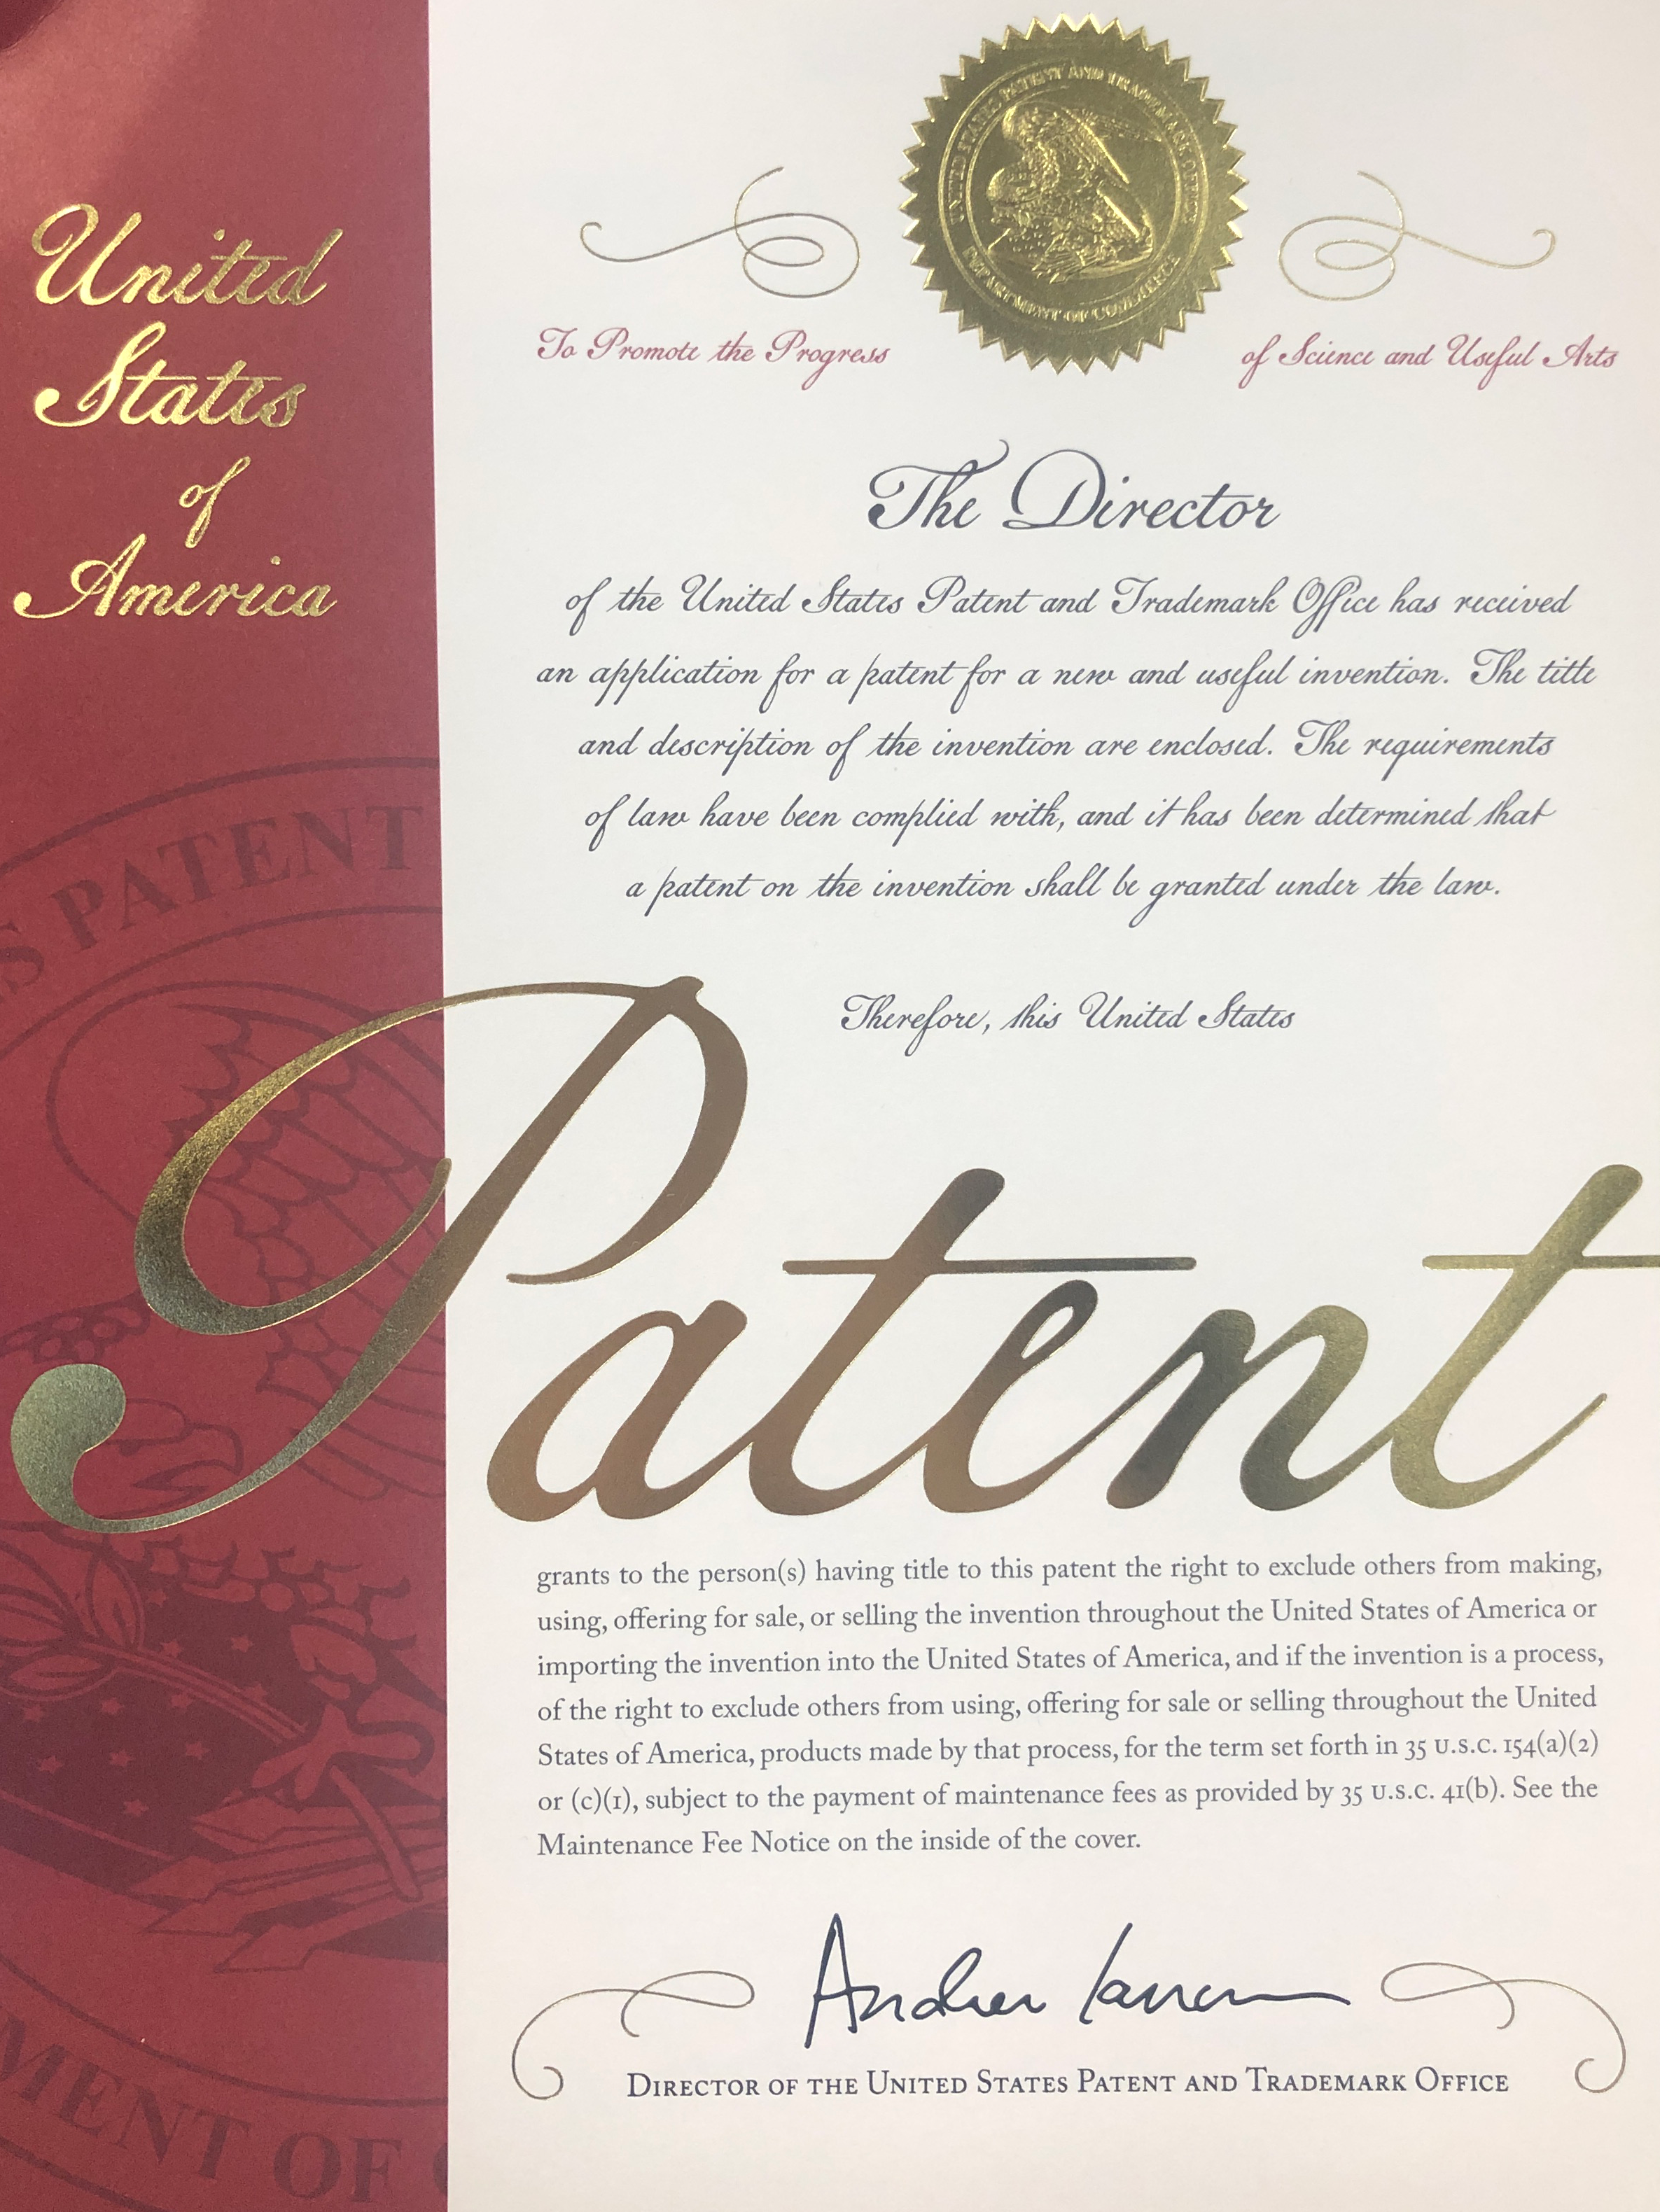 WiseTime secures a US patent for core parts of our software